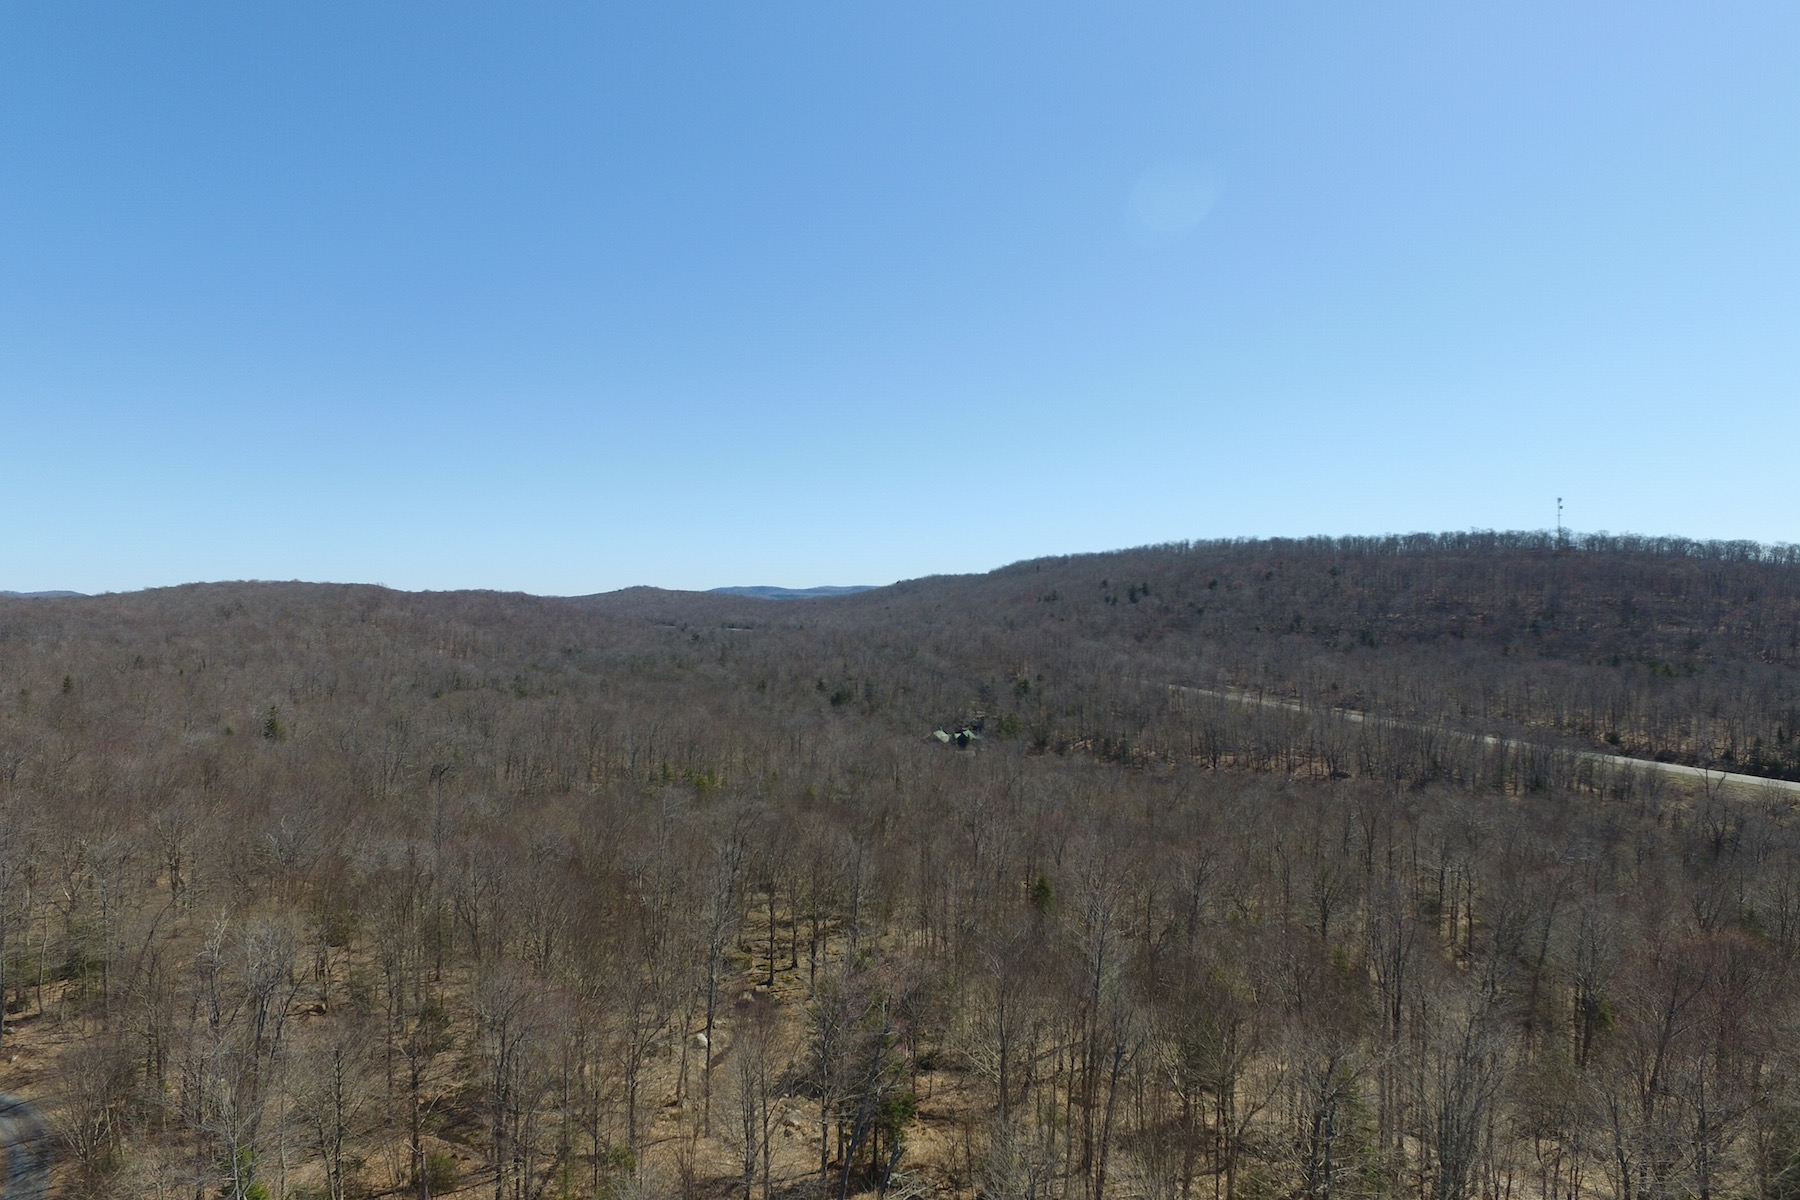 商用 为 销售 在 Adirondack Land For Sale 1515-C Nys Route 28 Thendara, 纽约州 13472 美国